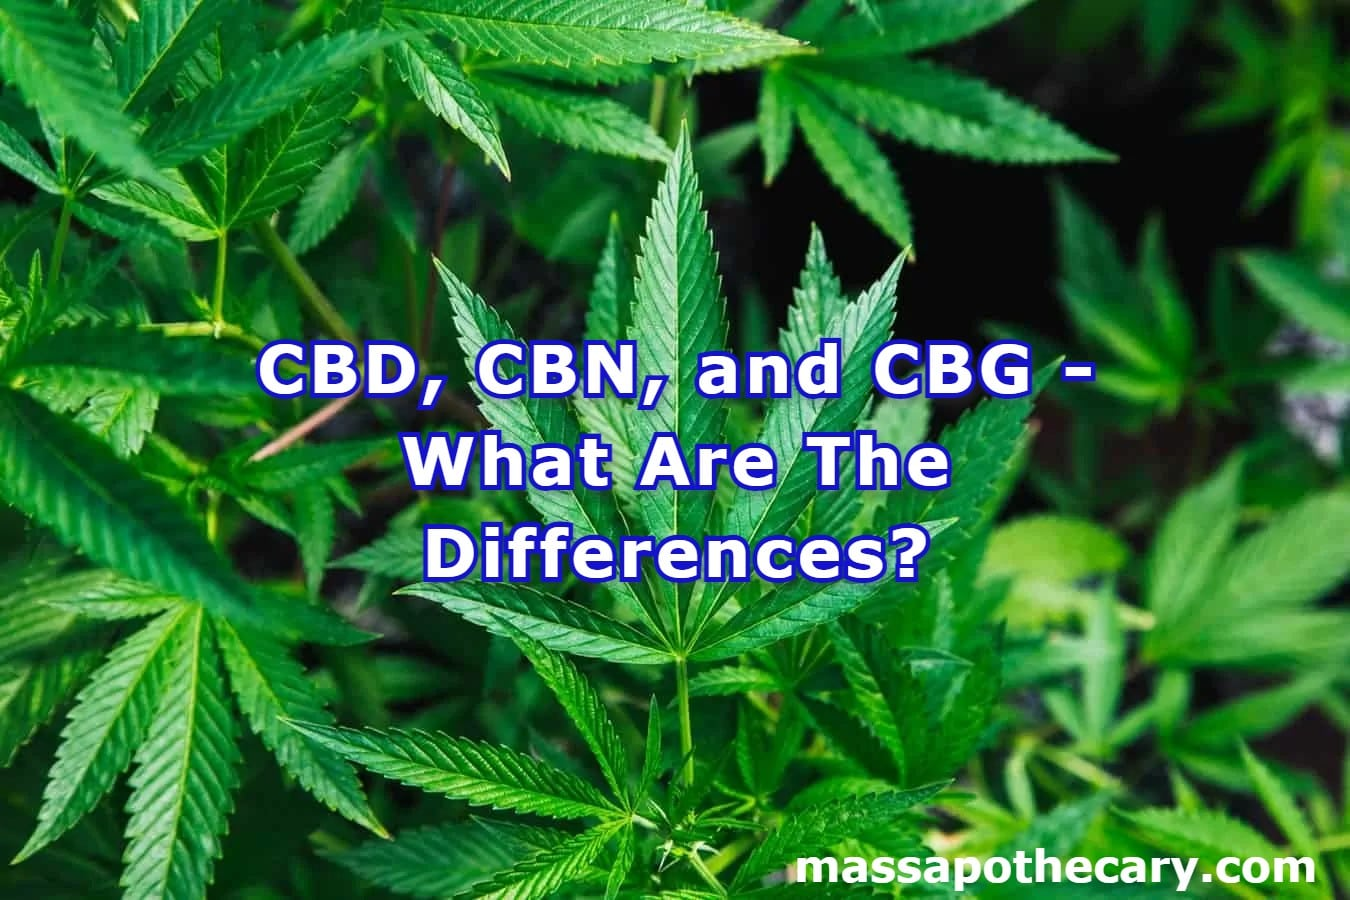 CBD, CBN, and CBG - What Are The Differences - The Mass Apothecary CBD Store